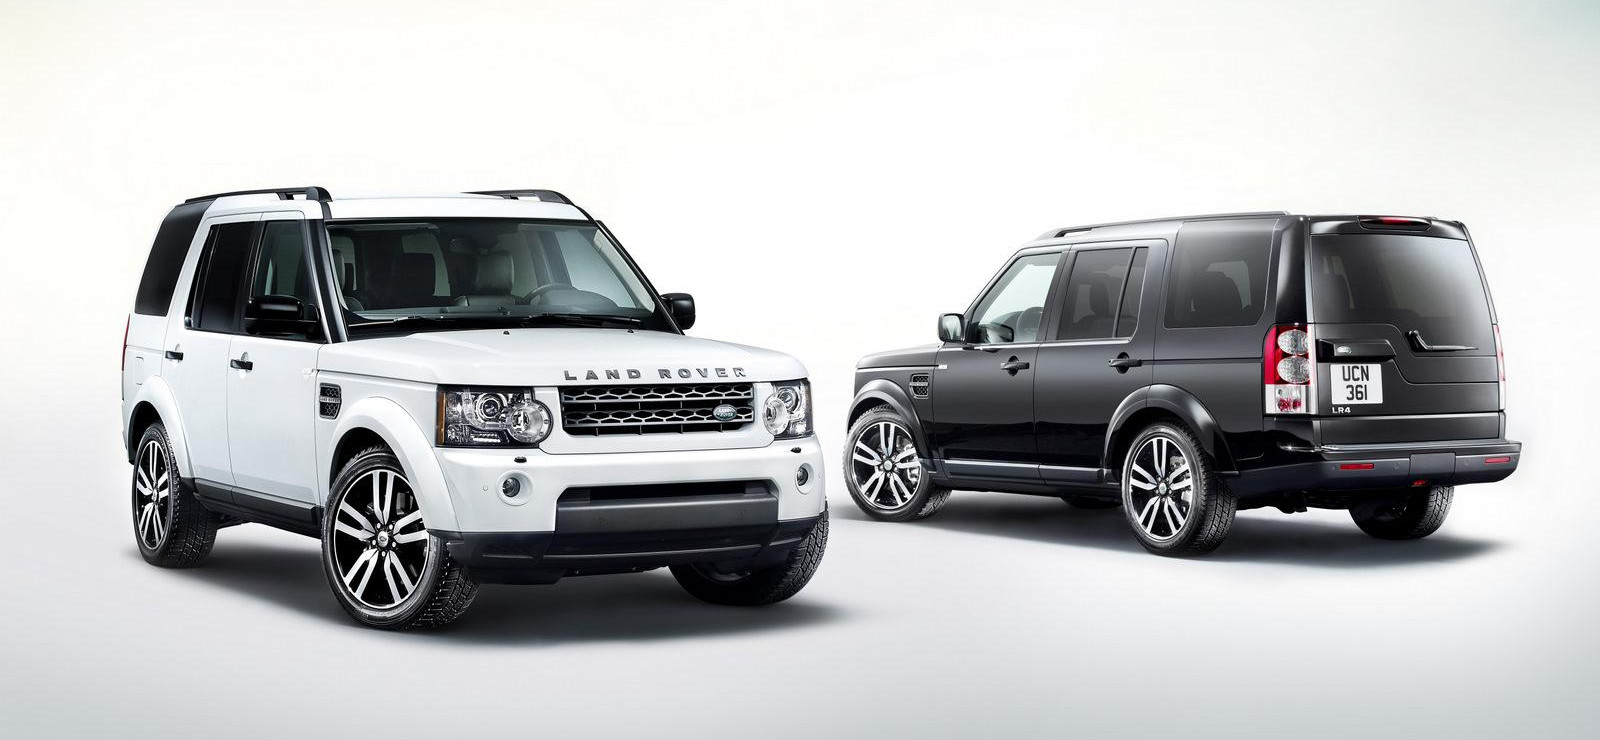 2011 LR4 Ads: Land Rover Makes